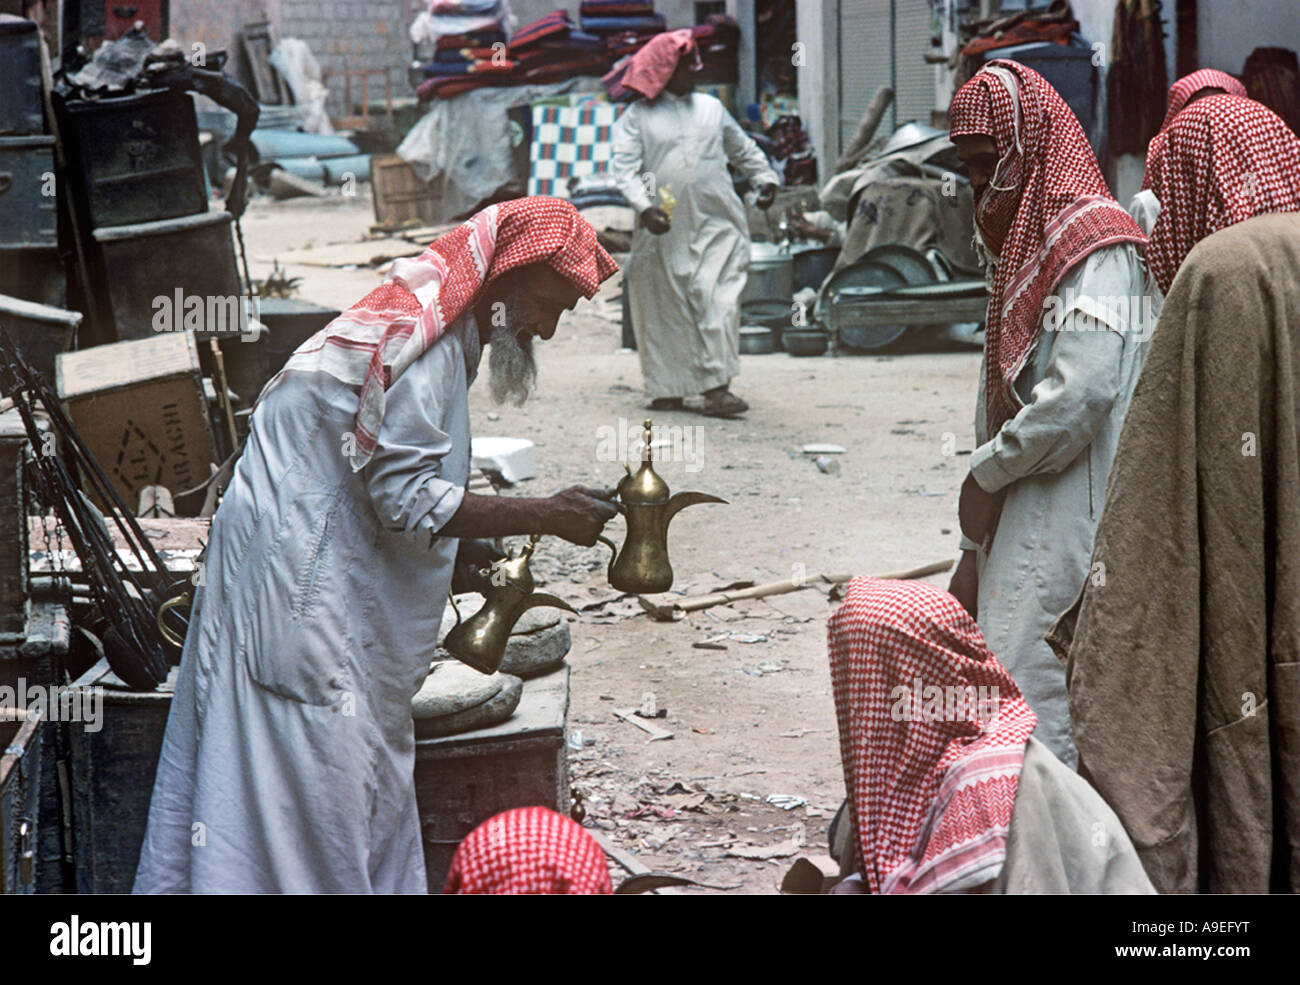 Saudi Arabia, Riyadh. A market seller offers a coffee pot for sale in the market place. - Stock Image